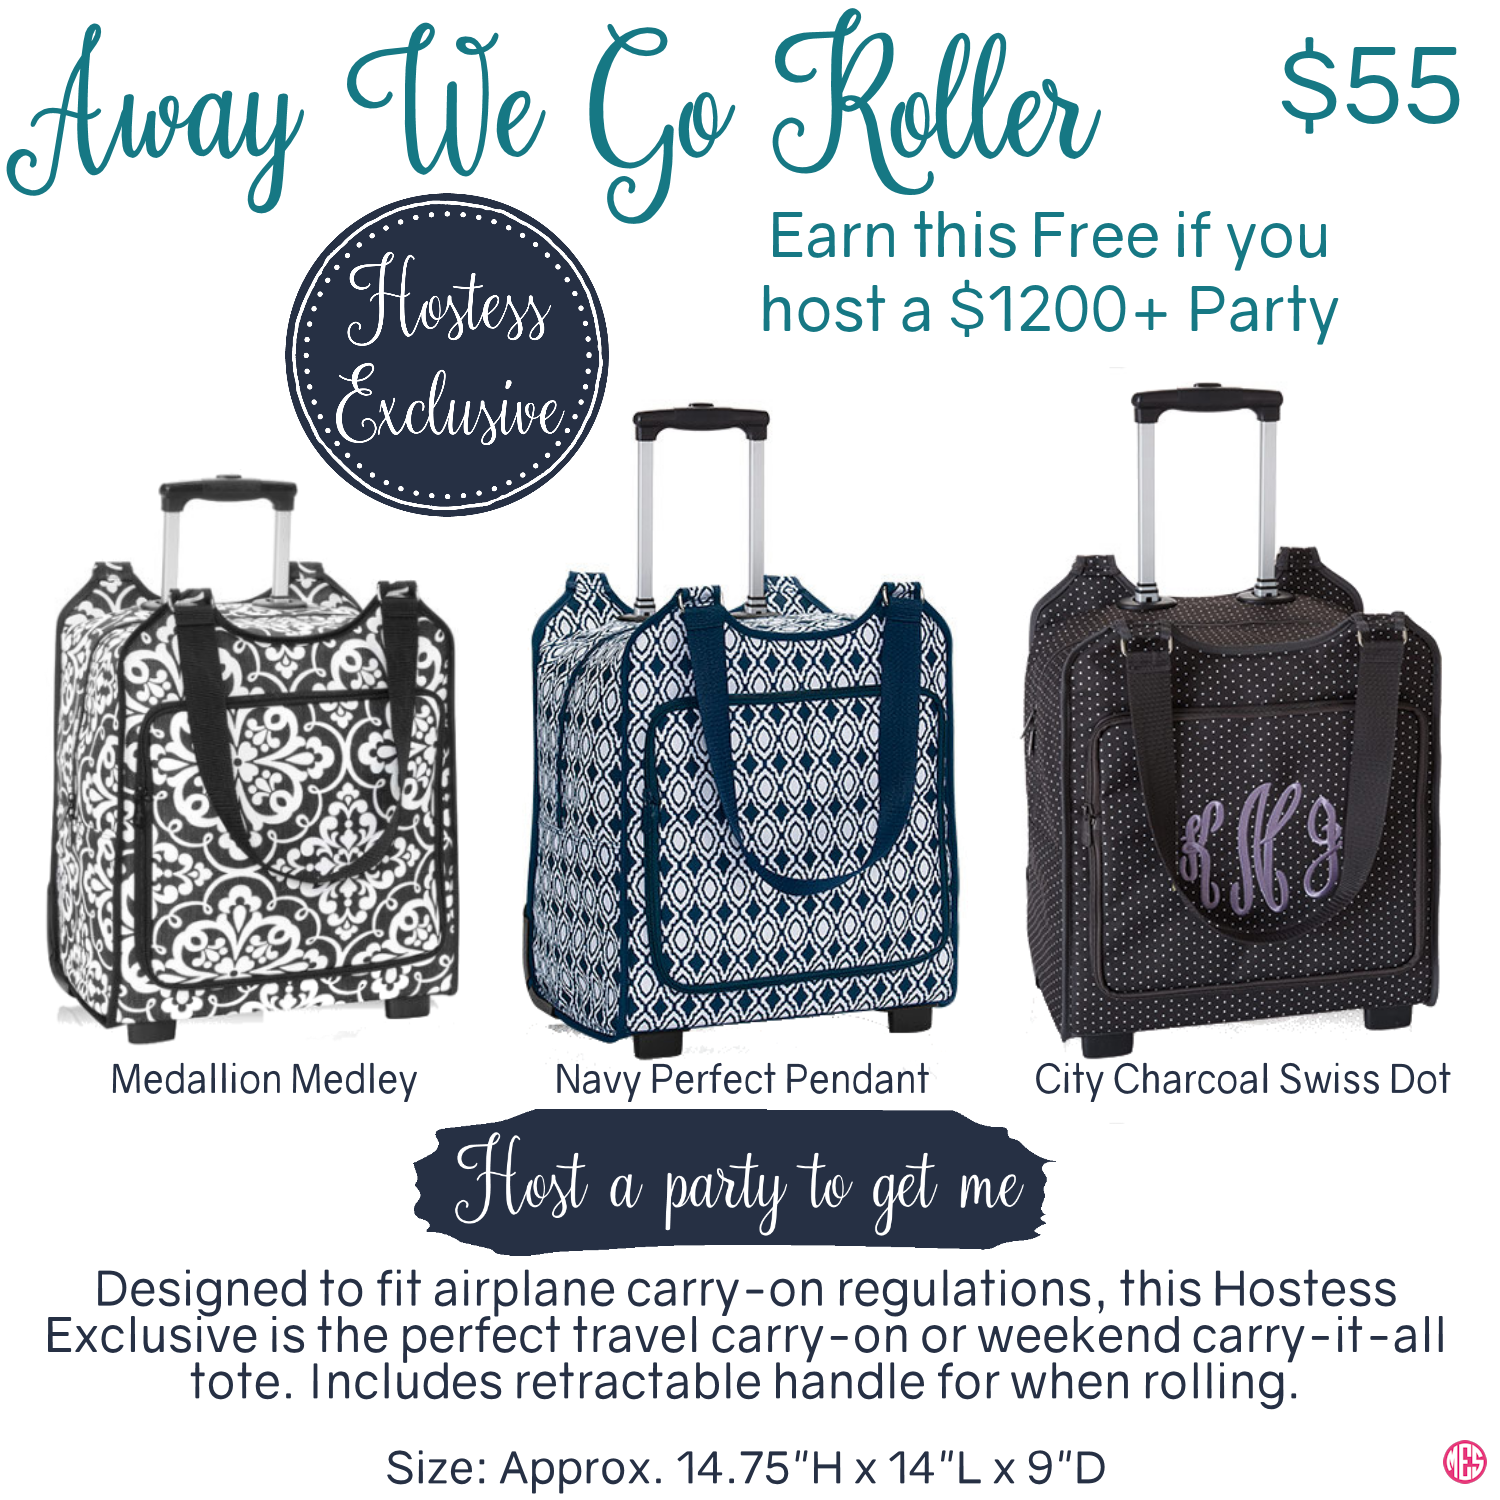 43d5b4fedc77 Thirty-One Hostess Exclusive Away We Go Roller | Thirty-one | Thirty ...